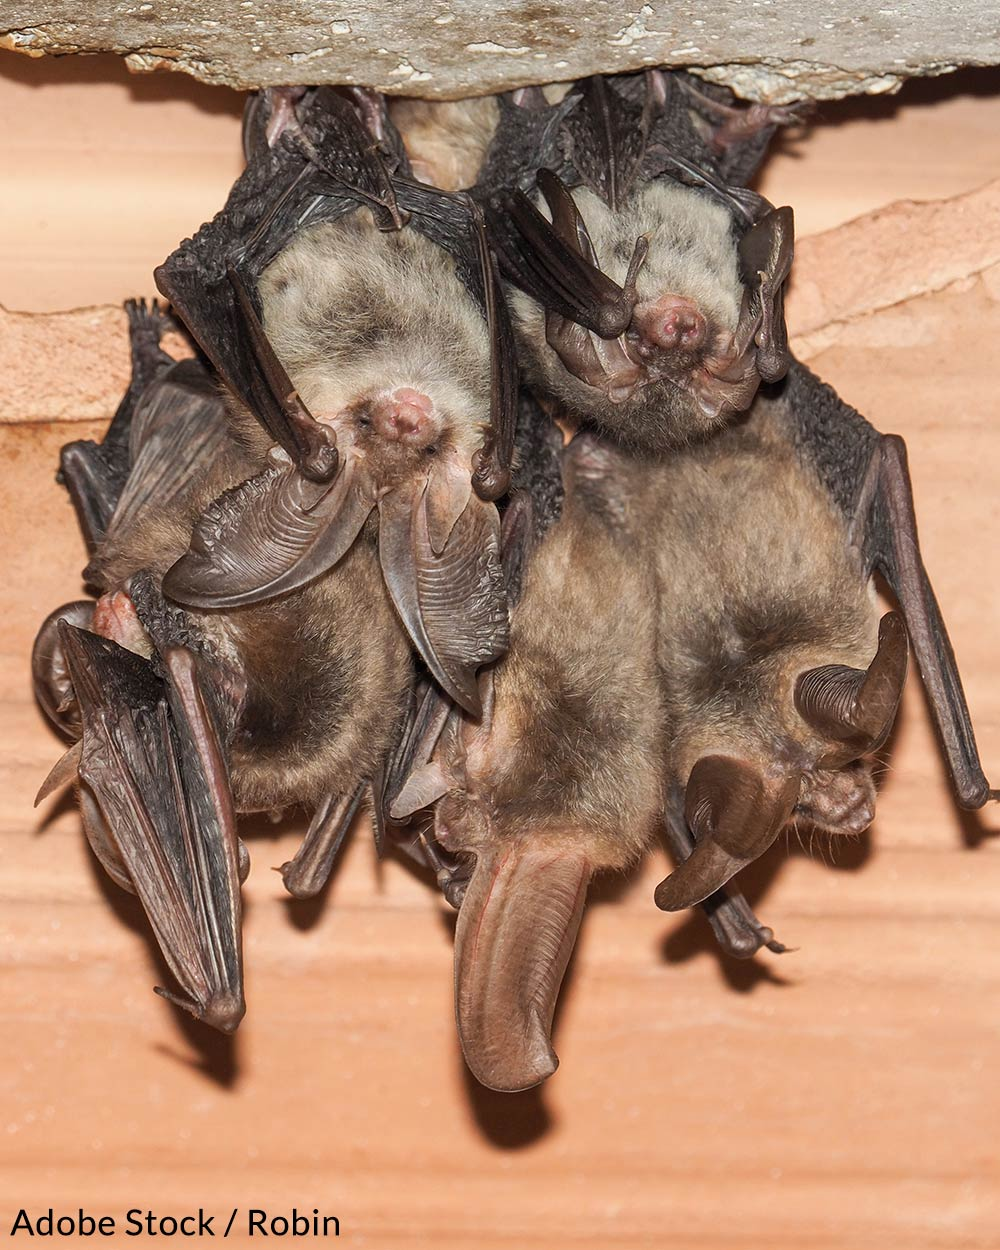 Bats with WNS develop white fuzzy fungal growthon their muzzles and wings during hibernation